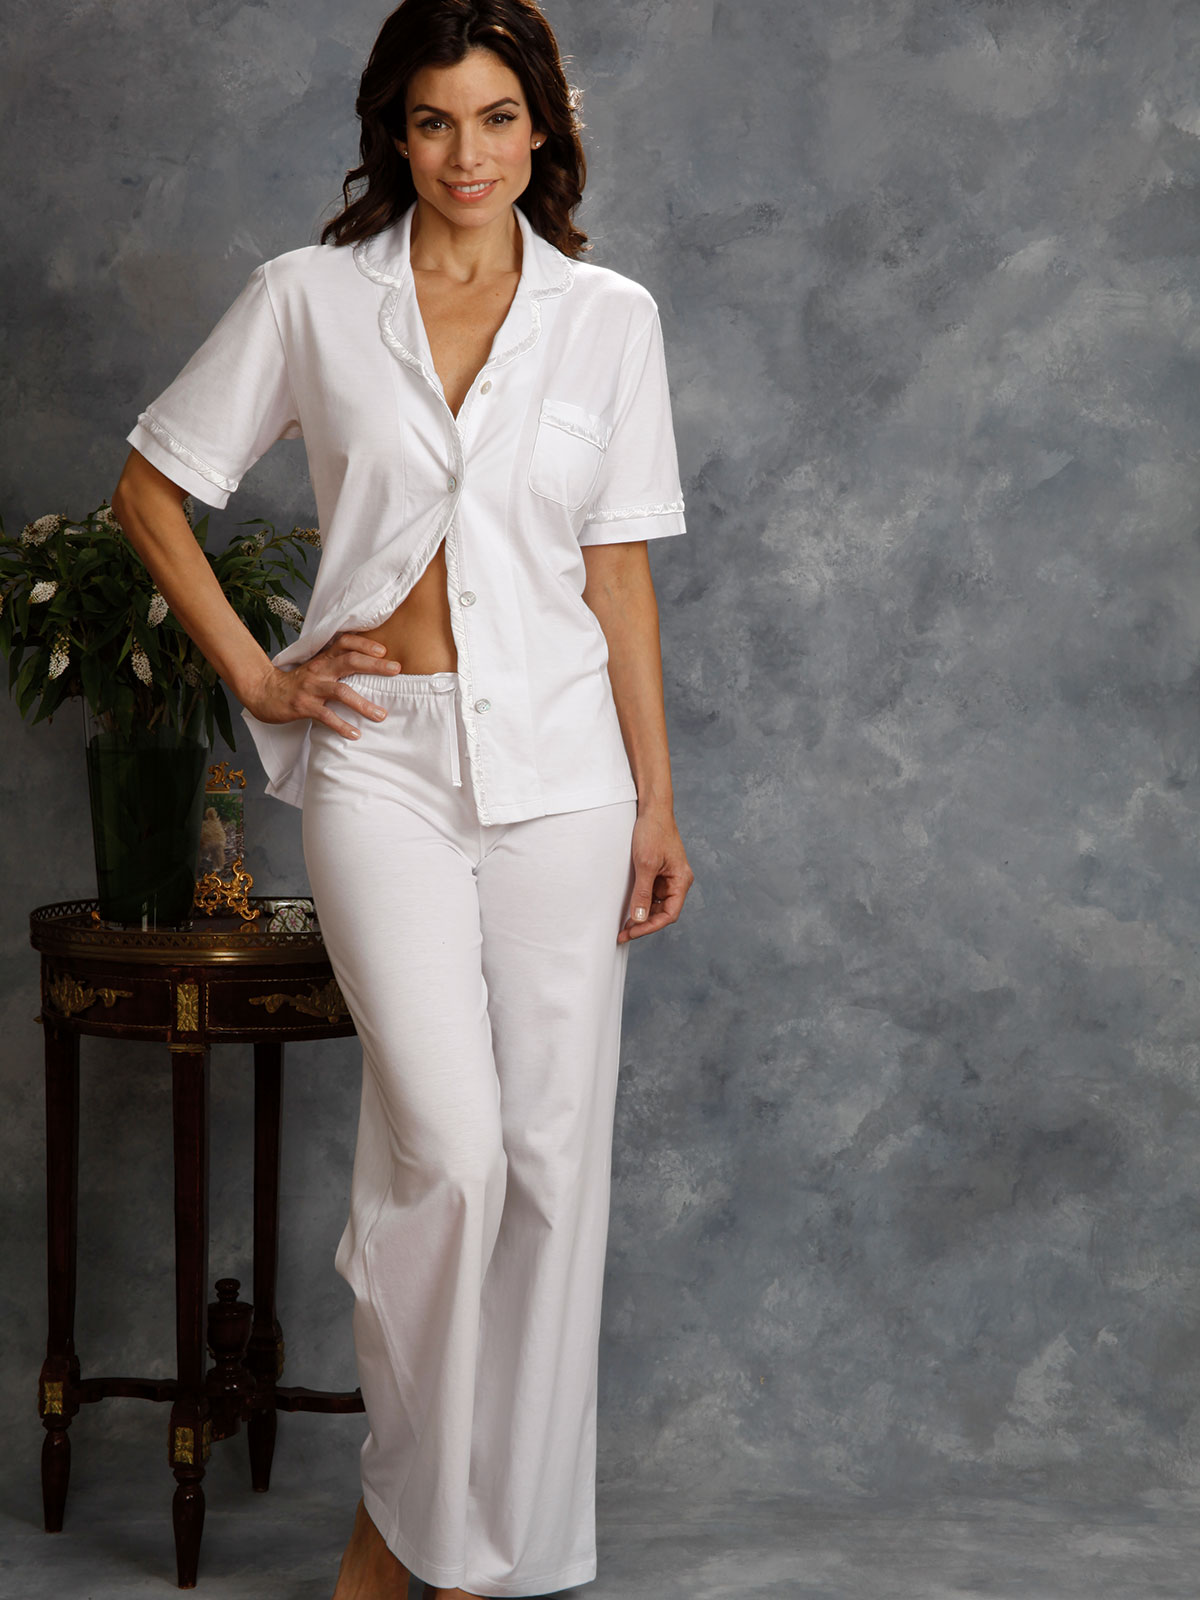 Annelise Luxury Nightwear Schweitzer Linen